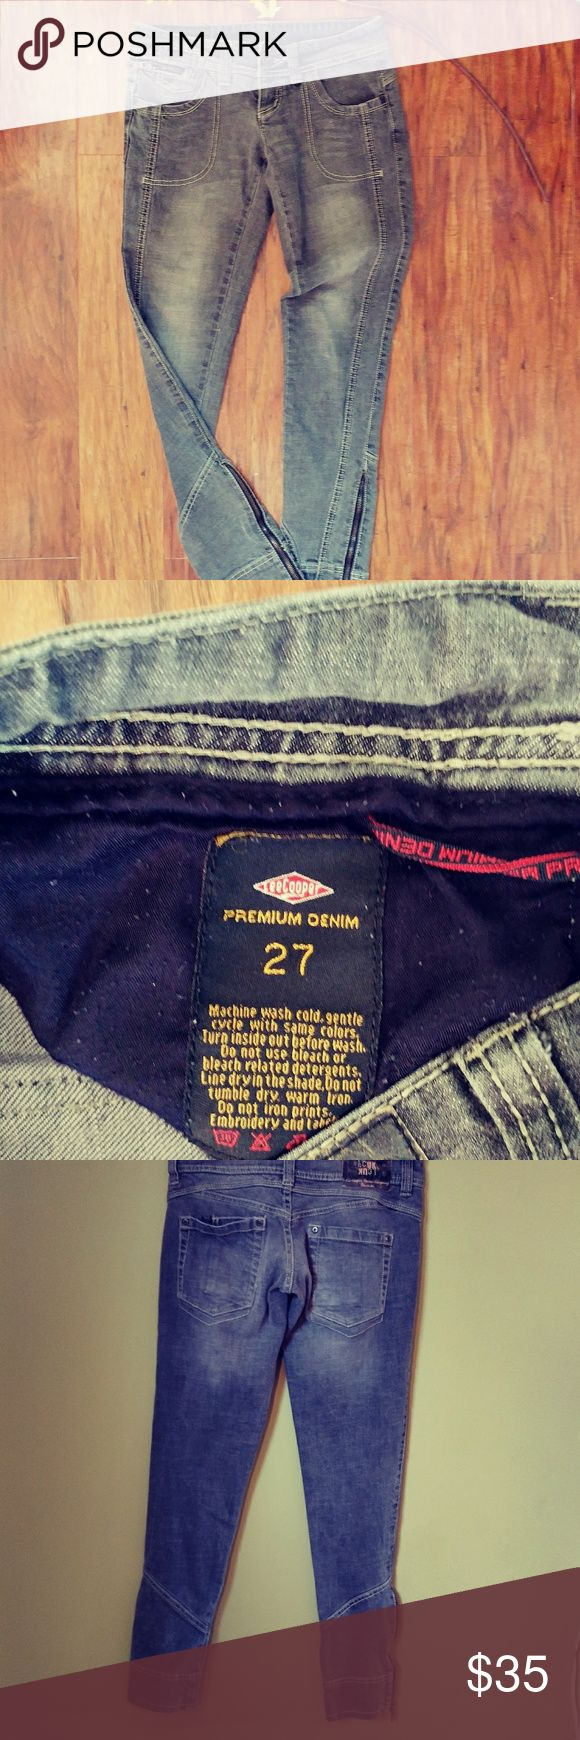 💠LEE COOPER JEANS💠 Great preloved condition. I love these I bought them for myself and they do not fit😭  these are grey faded denim with 2% spandex. 2 button, button fly, has 29 inseam and measures 15 flat across.  The bottom ankle measures 5 1/2 inches no stretch there. Feel free to ask any questions bundle for better discount Lee Cooper denim company Jeans Ankle & Cropped